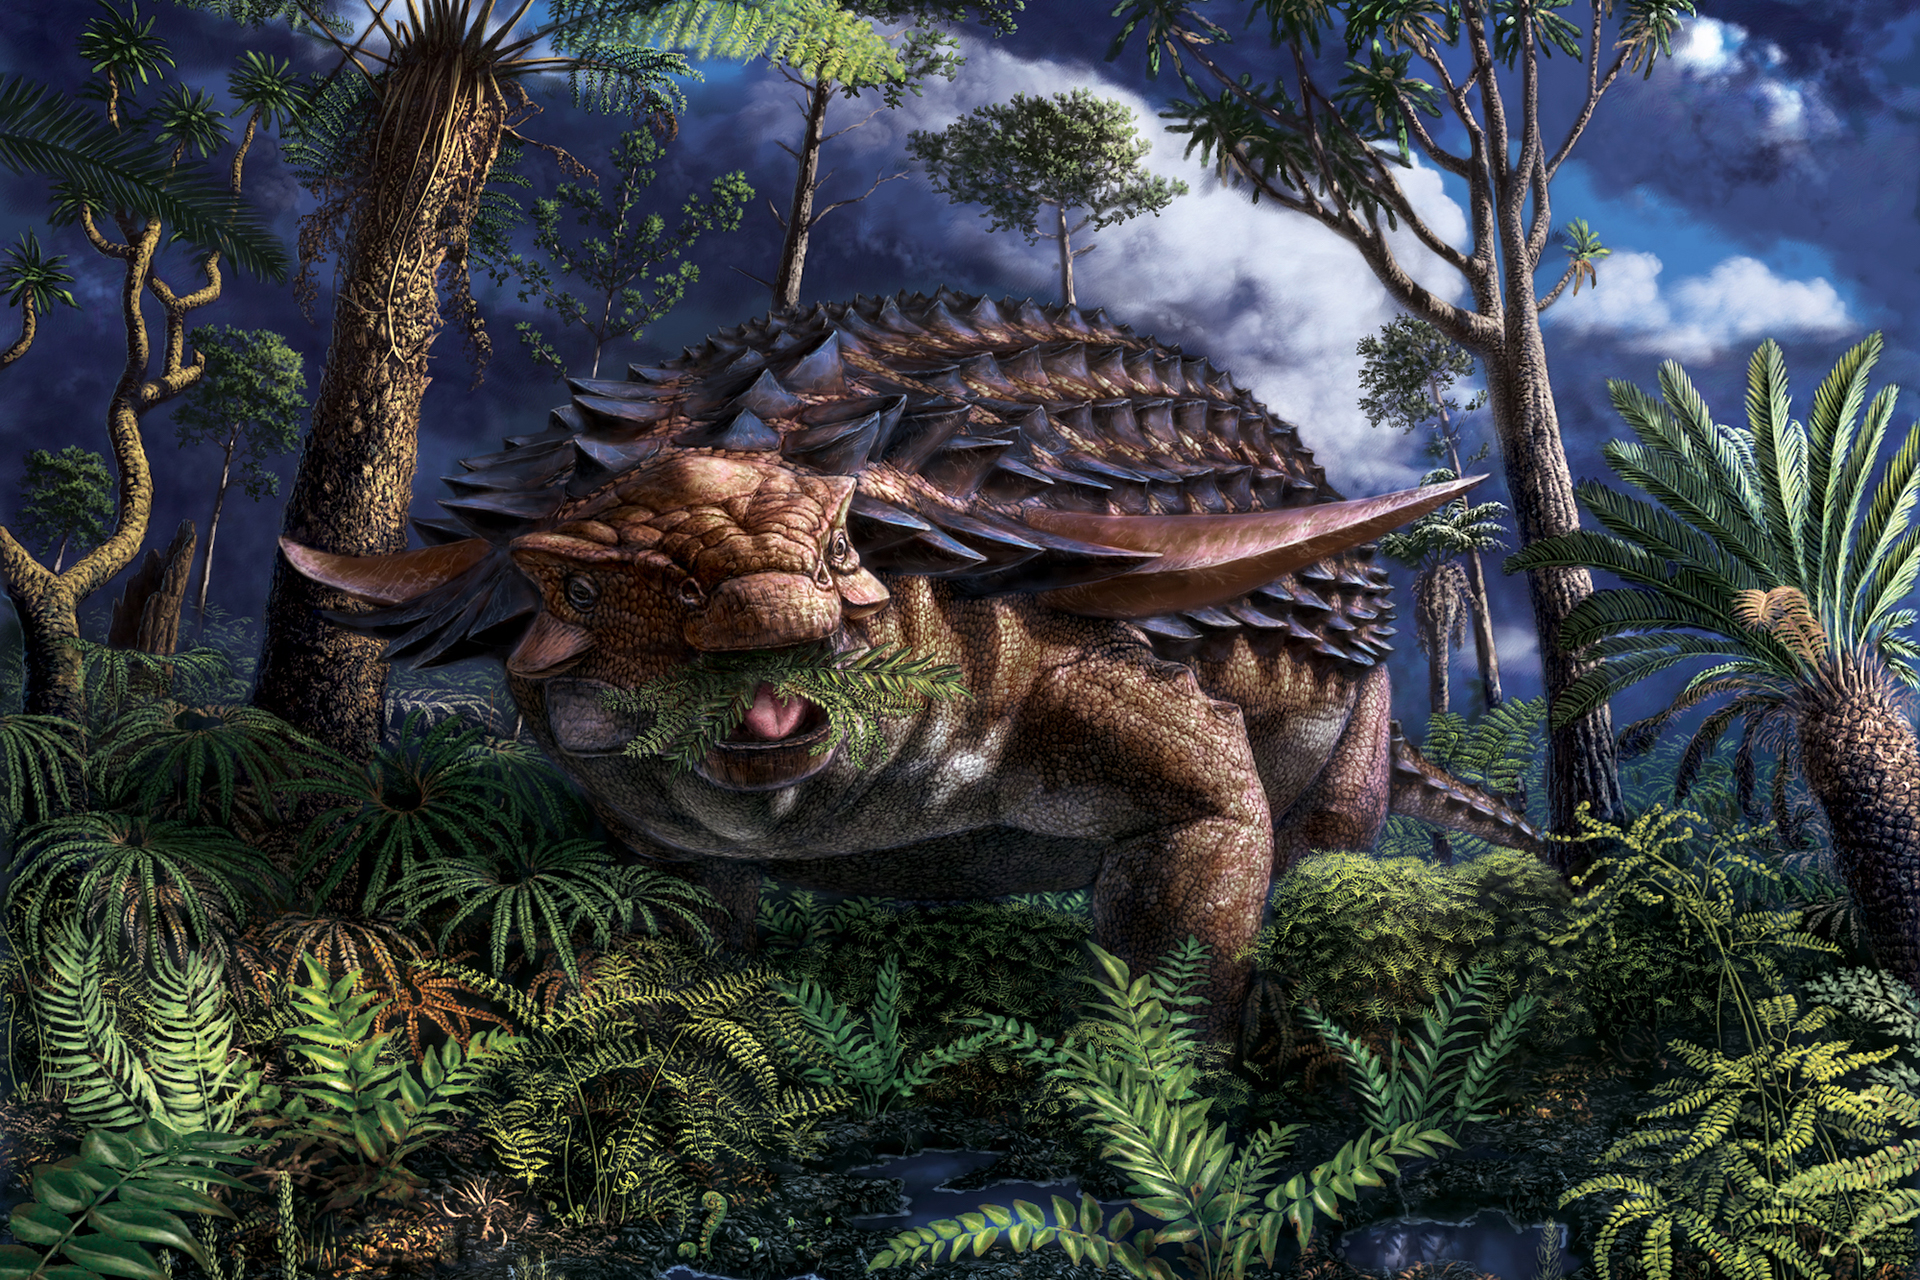 coolest dinosaur findings of 2020 / Interesting dinosaur discoveries